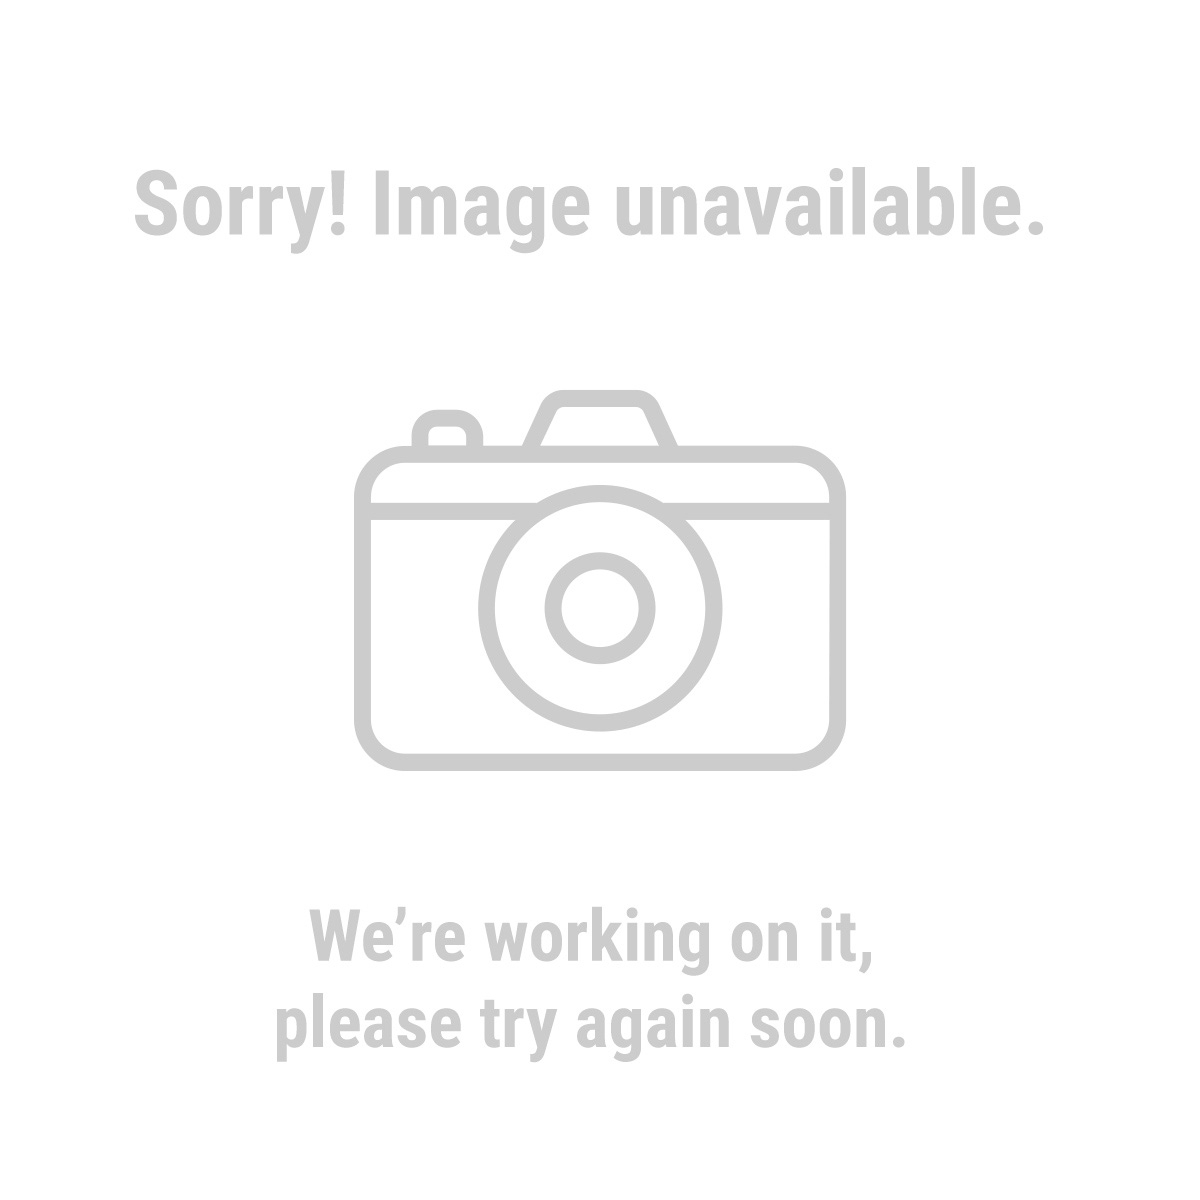 "Warrior 95821 7"" Cutoff Wheel for Masonry, Pack of 5"